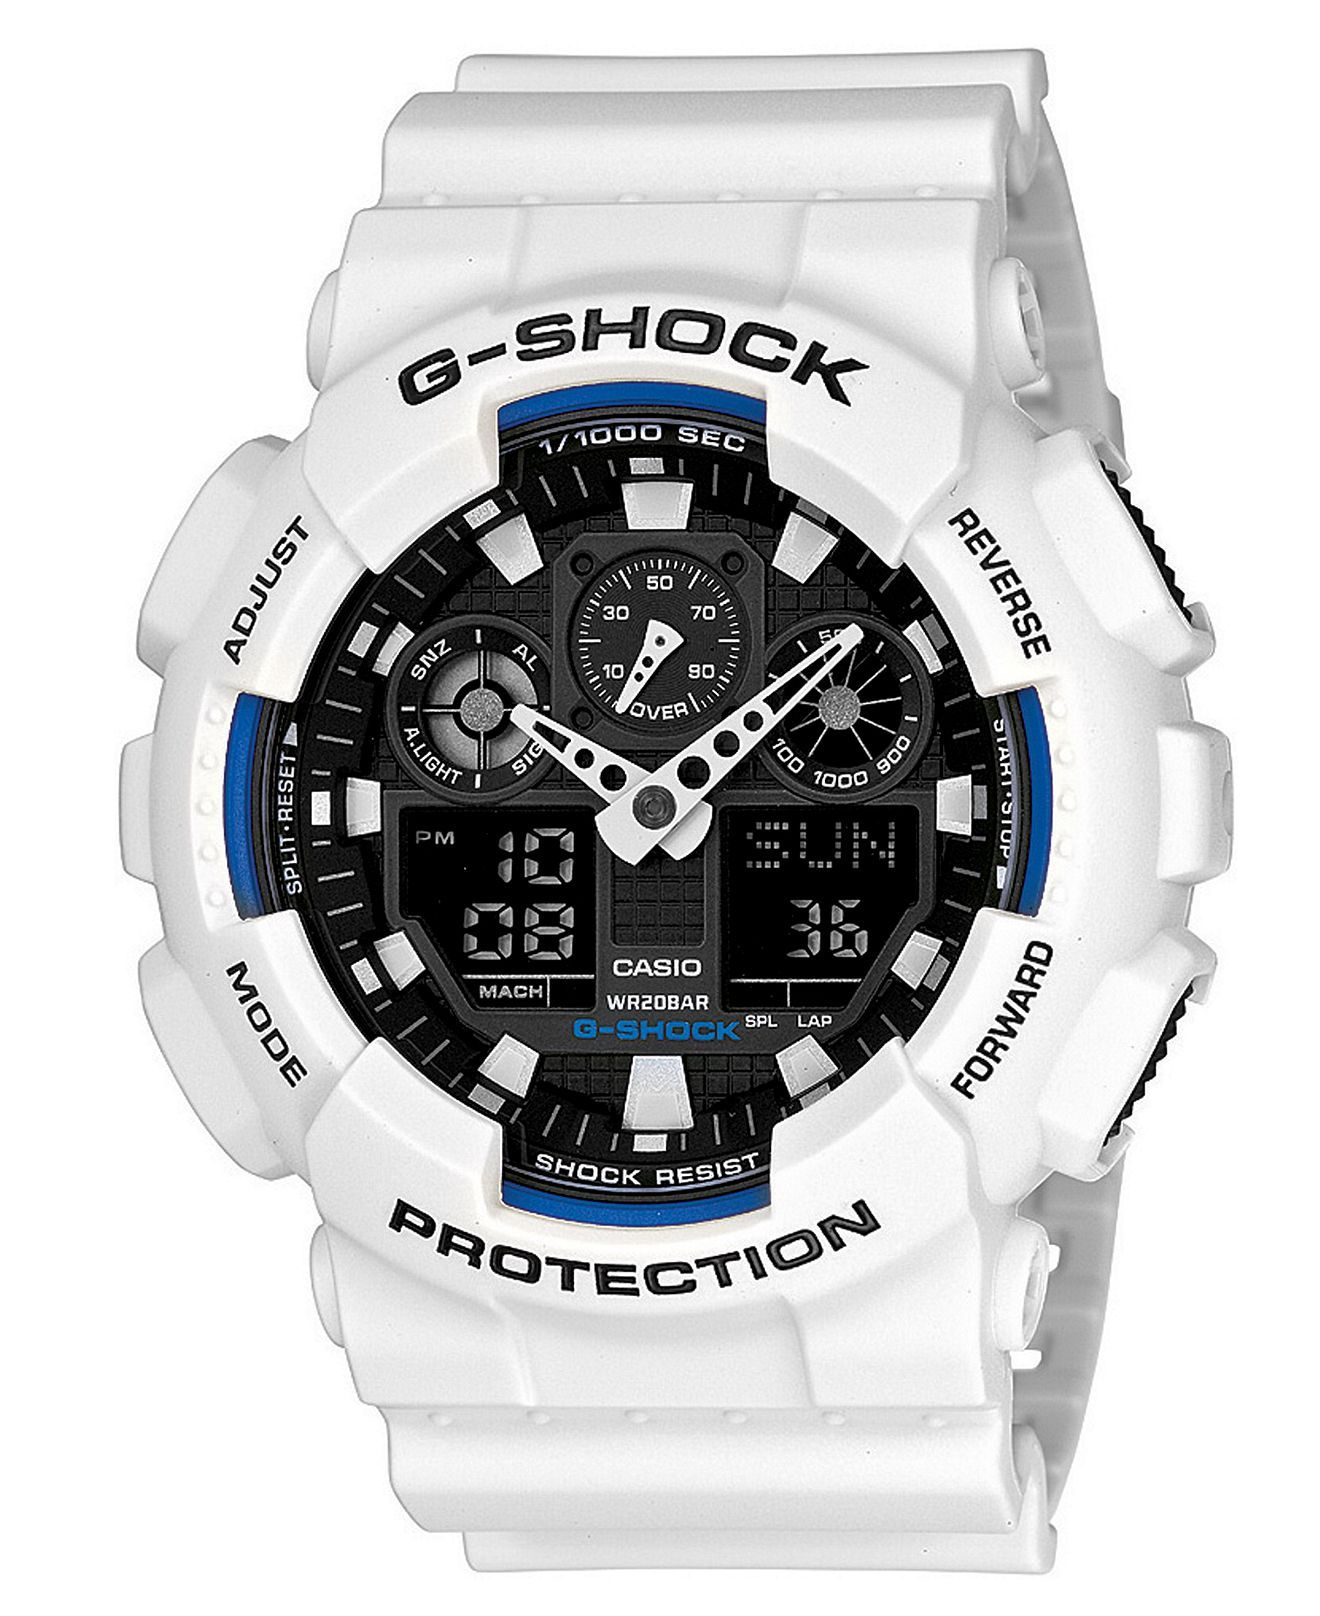 analog watches watch view ga larger shock g image casio standard digital